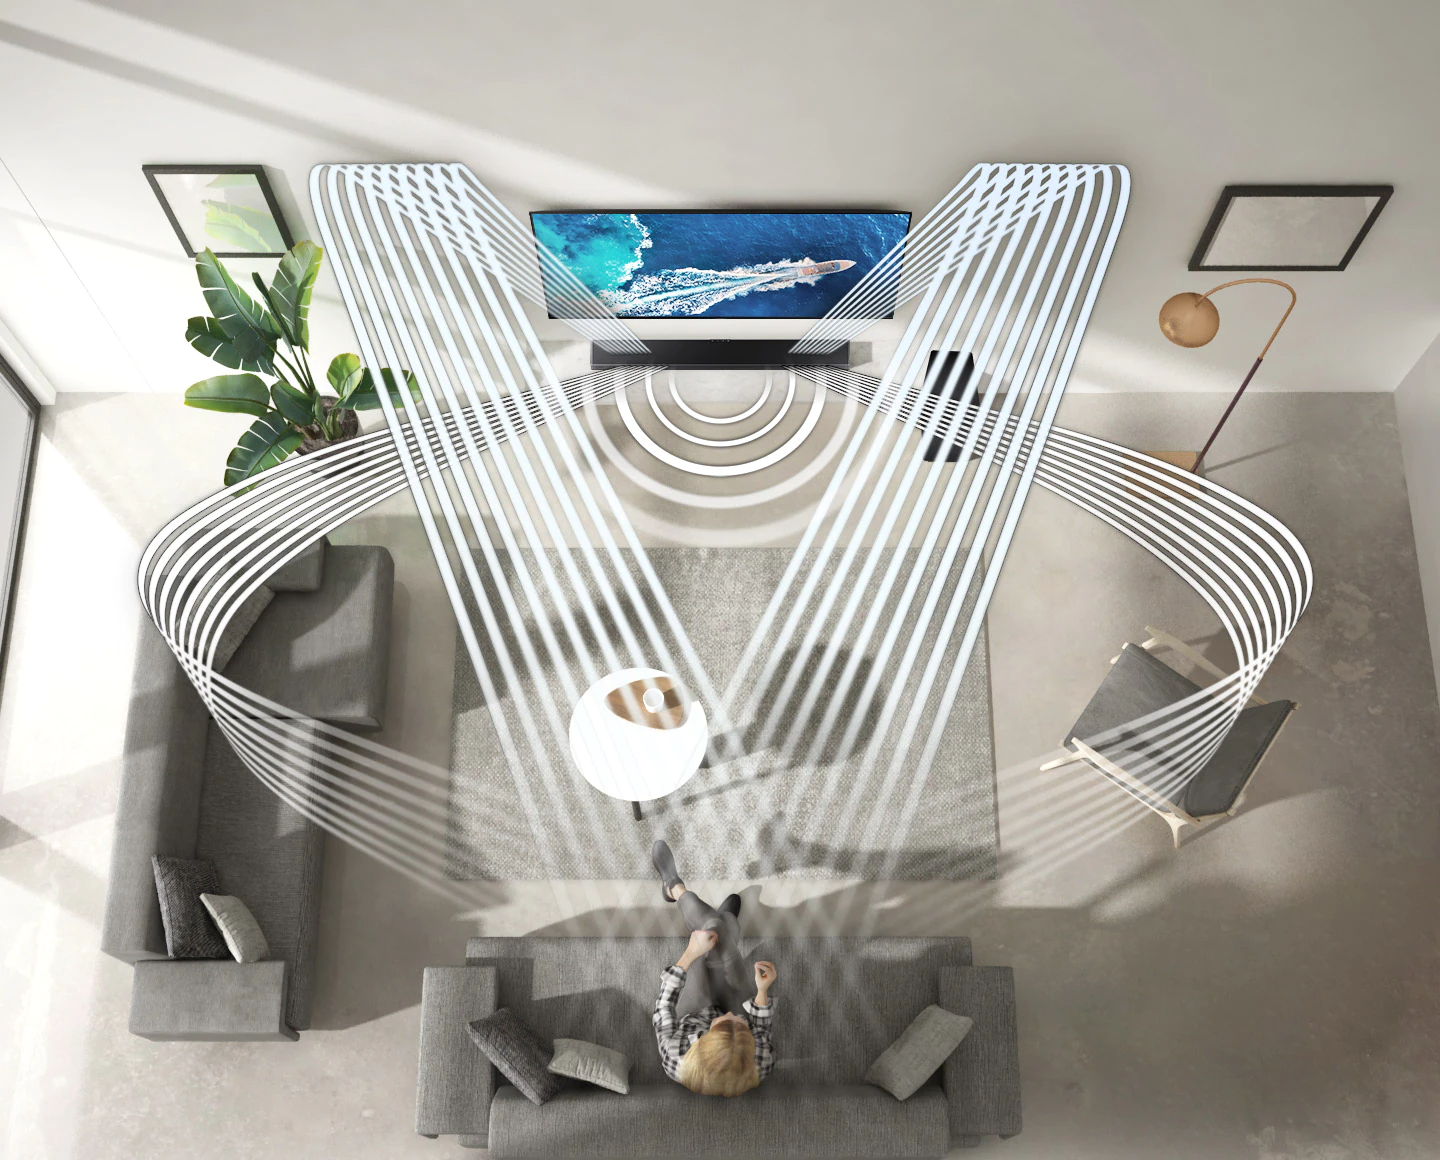 Various soundwave graphics coming from soundbar illustrate how the woman enjoying QLED TV in her living room experiences sound created by Samsung Acoustic Beam. 2 soundwave graphics are up-firing from the top of the soundbar and toward the woman. 3 soundwave graphics are coming from the side and center of the soundbar and toward the woman.